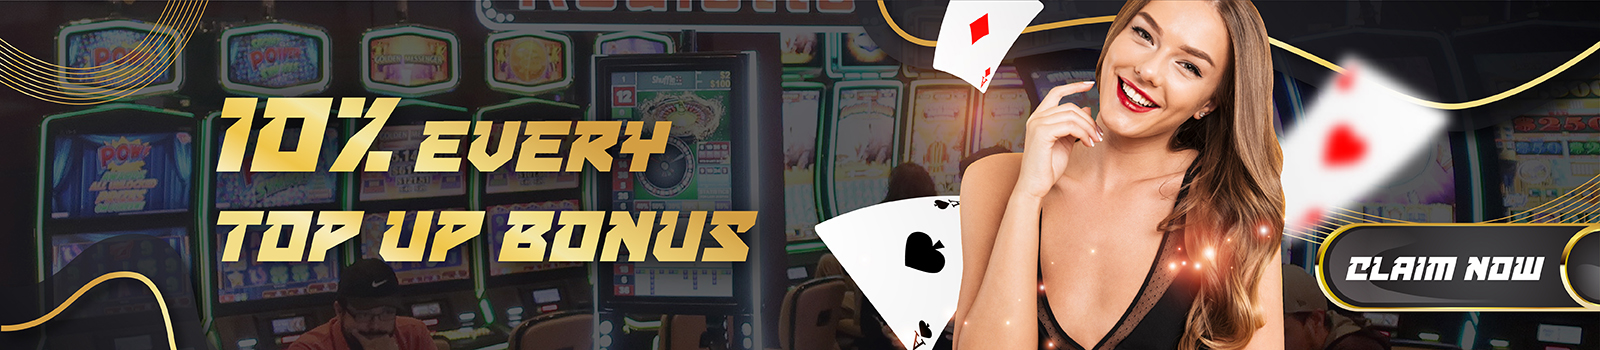 Online Casino Malaysia Welcome Top Up Bonus